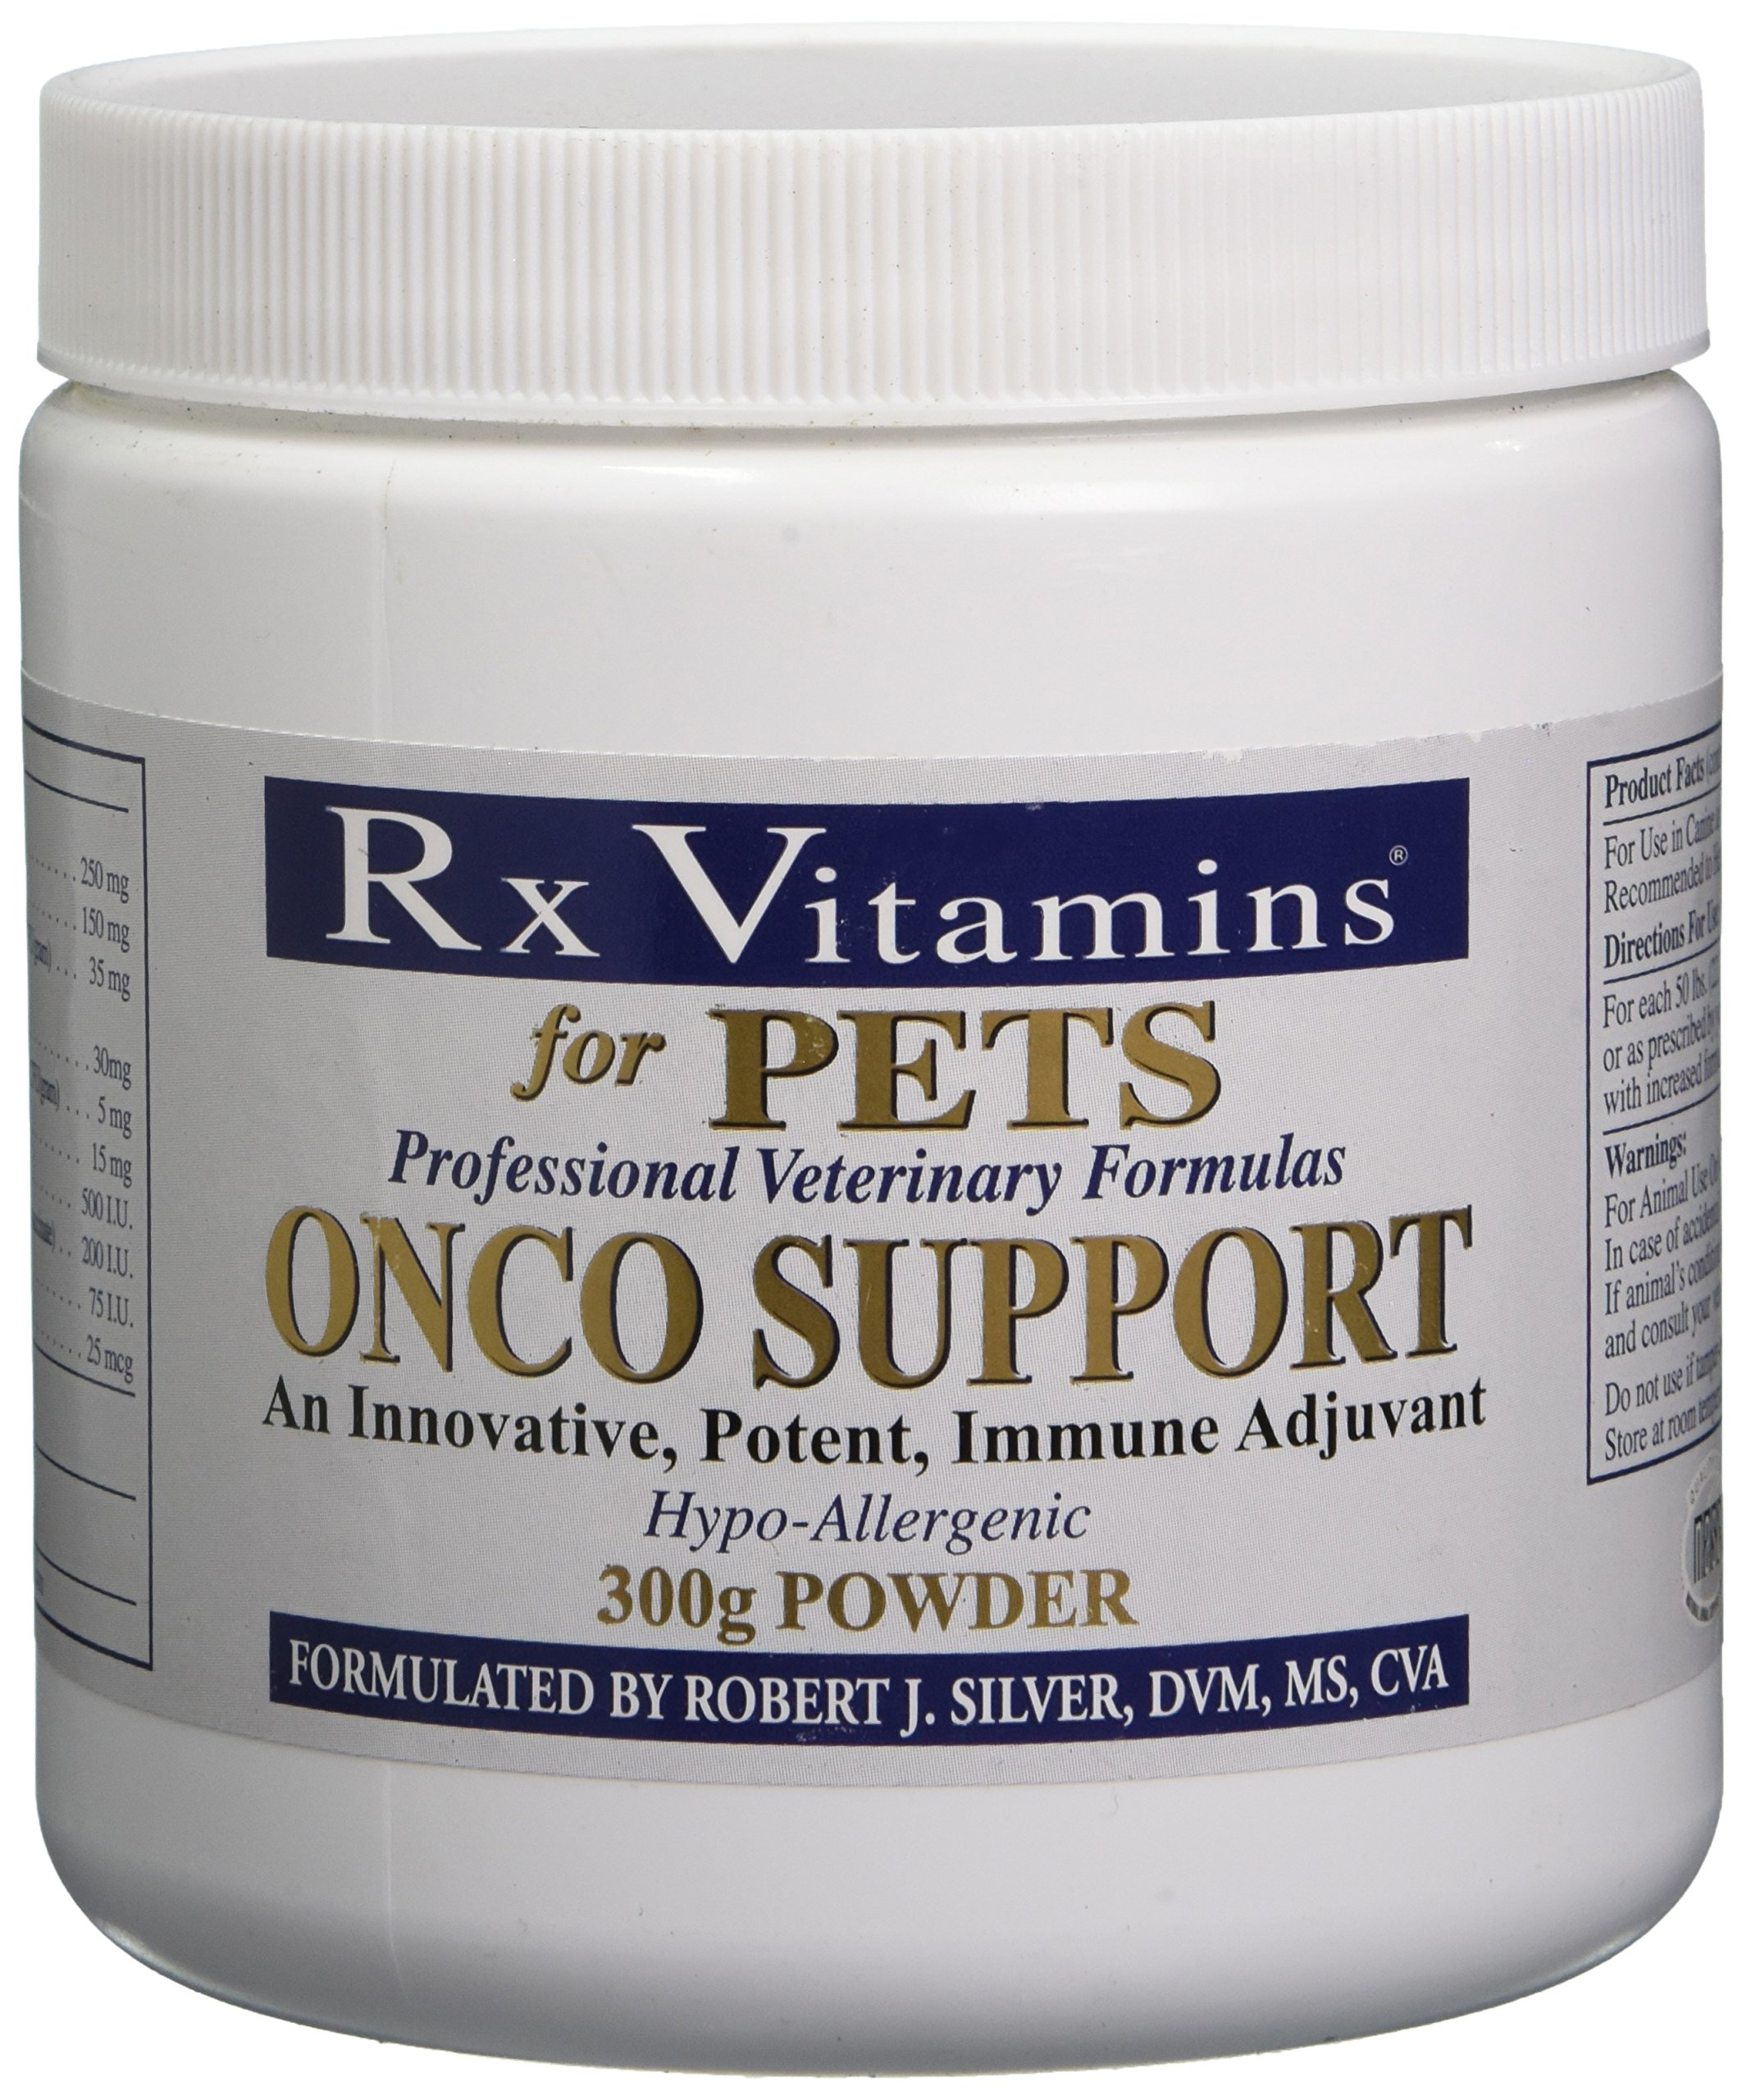 Rx Vitamins for Pets Onco Support for Dogs & Cats - Immune System Support - Veterinarian Formula - Powder 300g by Rx Vitamins